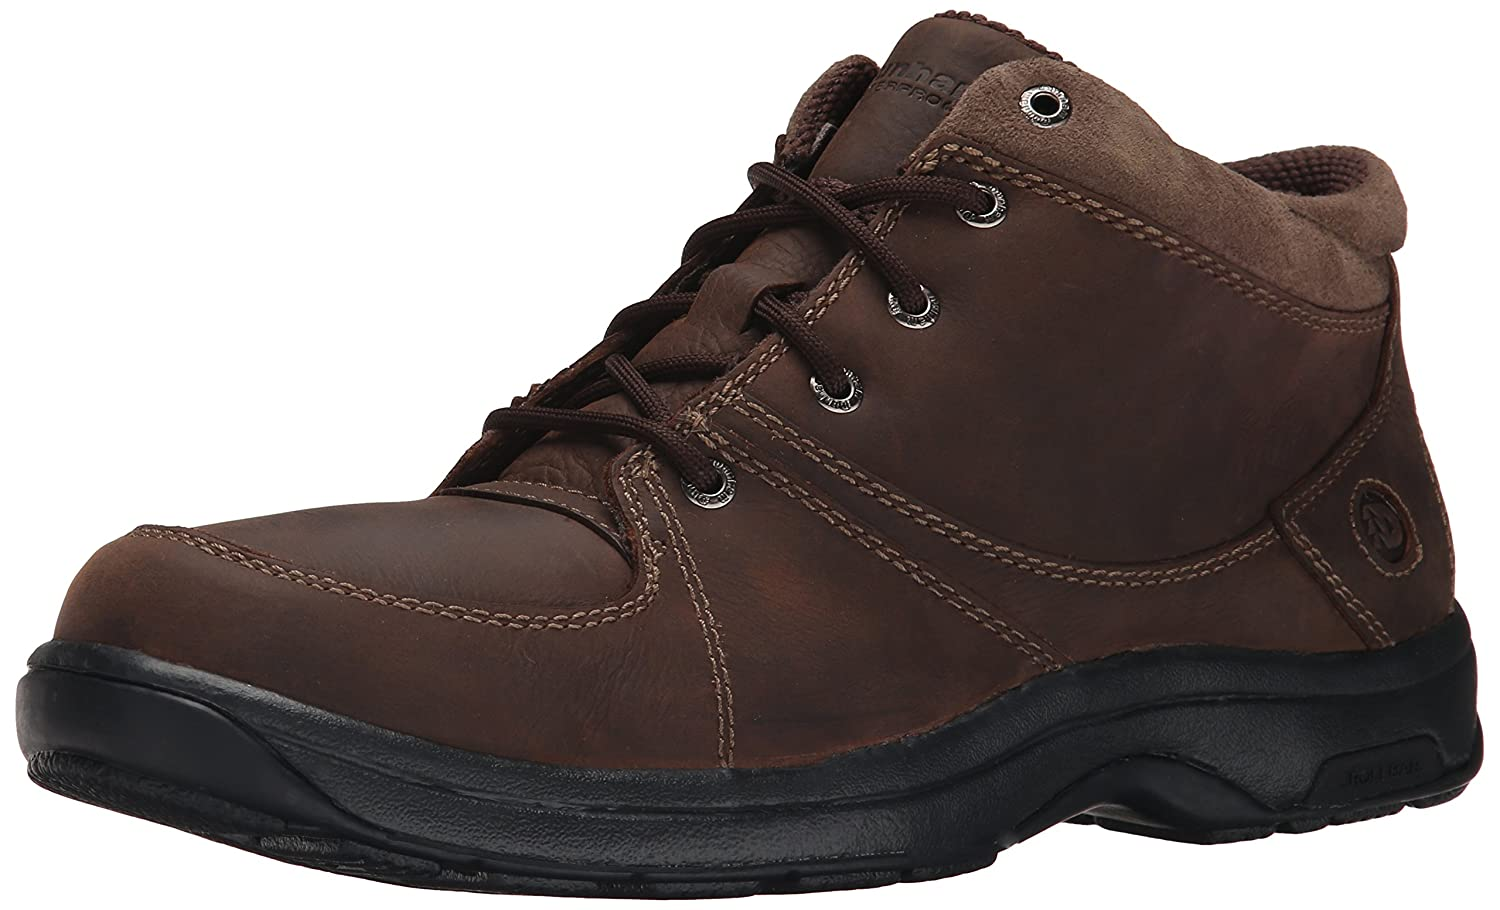 New Balance Dunham Men's Addison Mid Cut Waterproof Stiefel